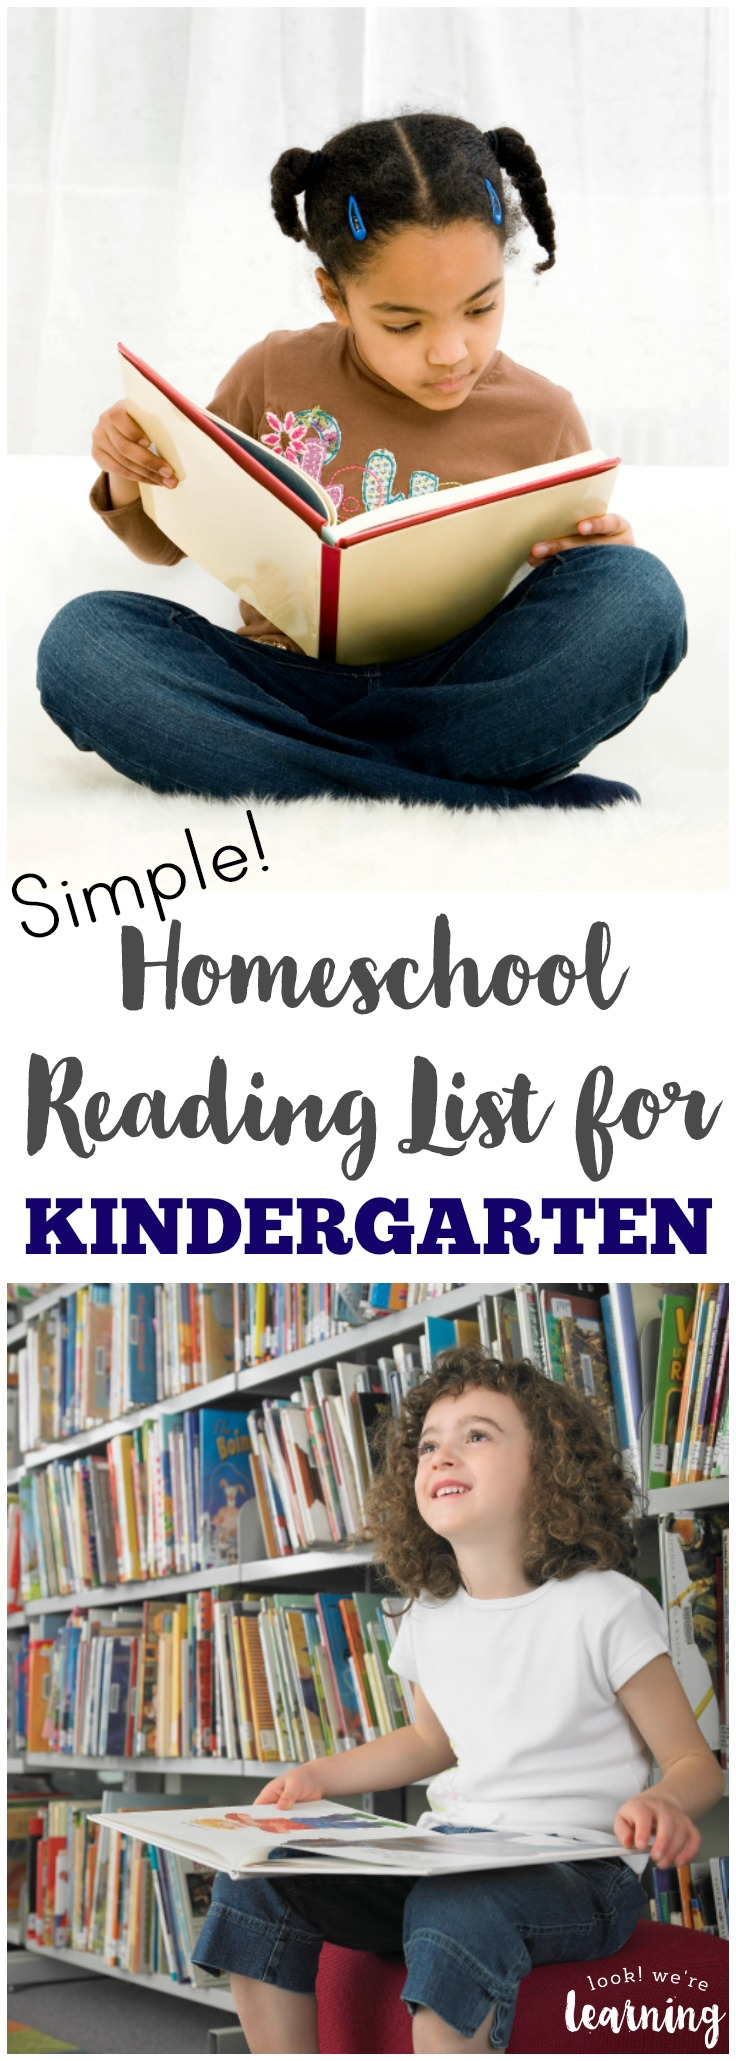 Share easy readers and fun stories with this simple kindergarten homeschool reading list!